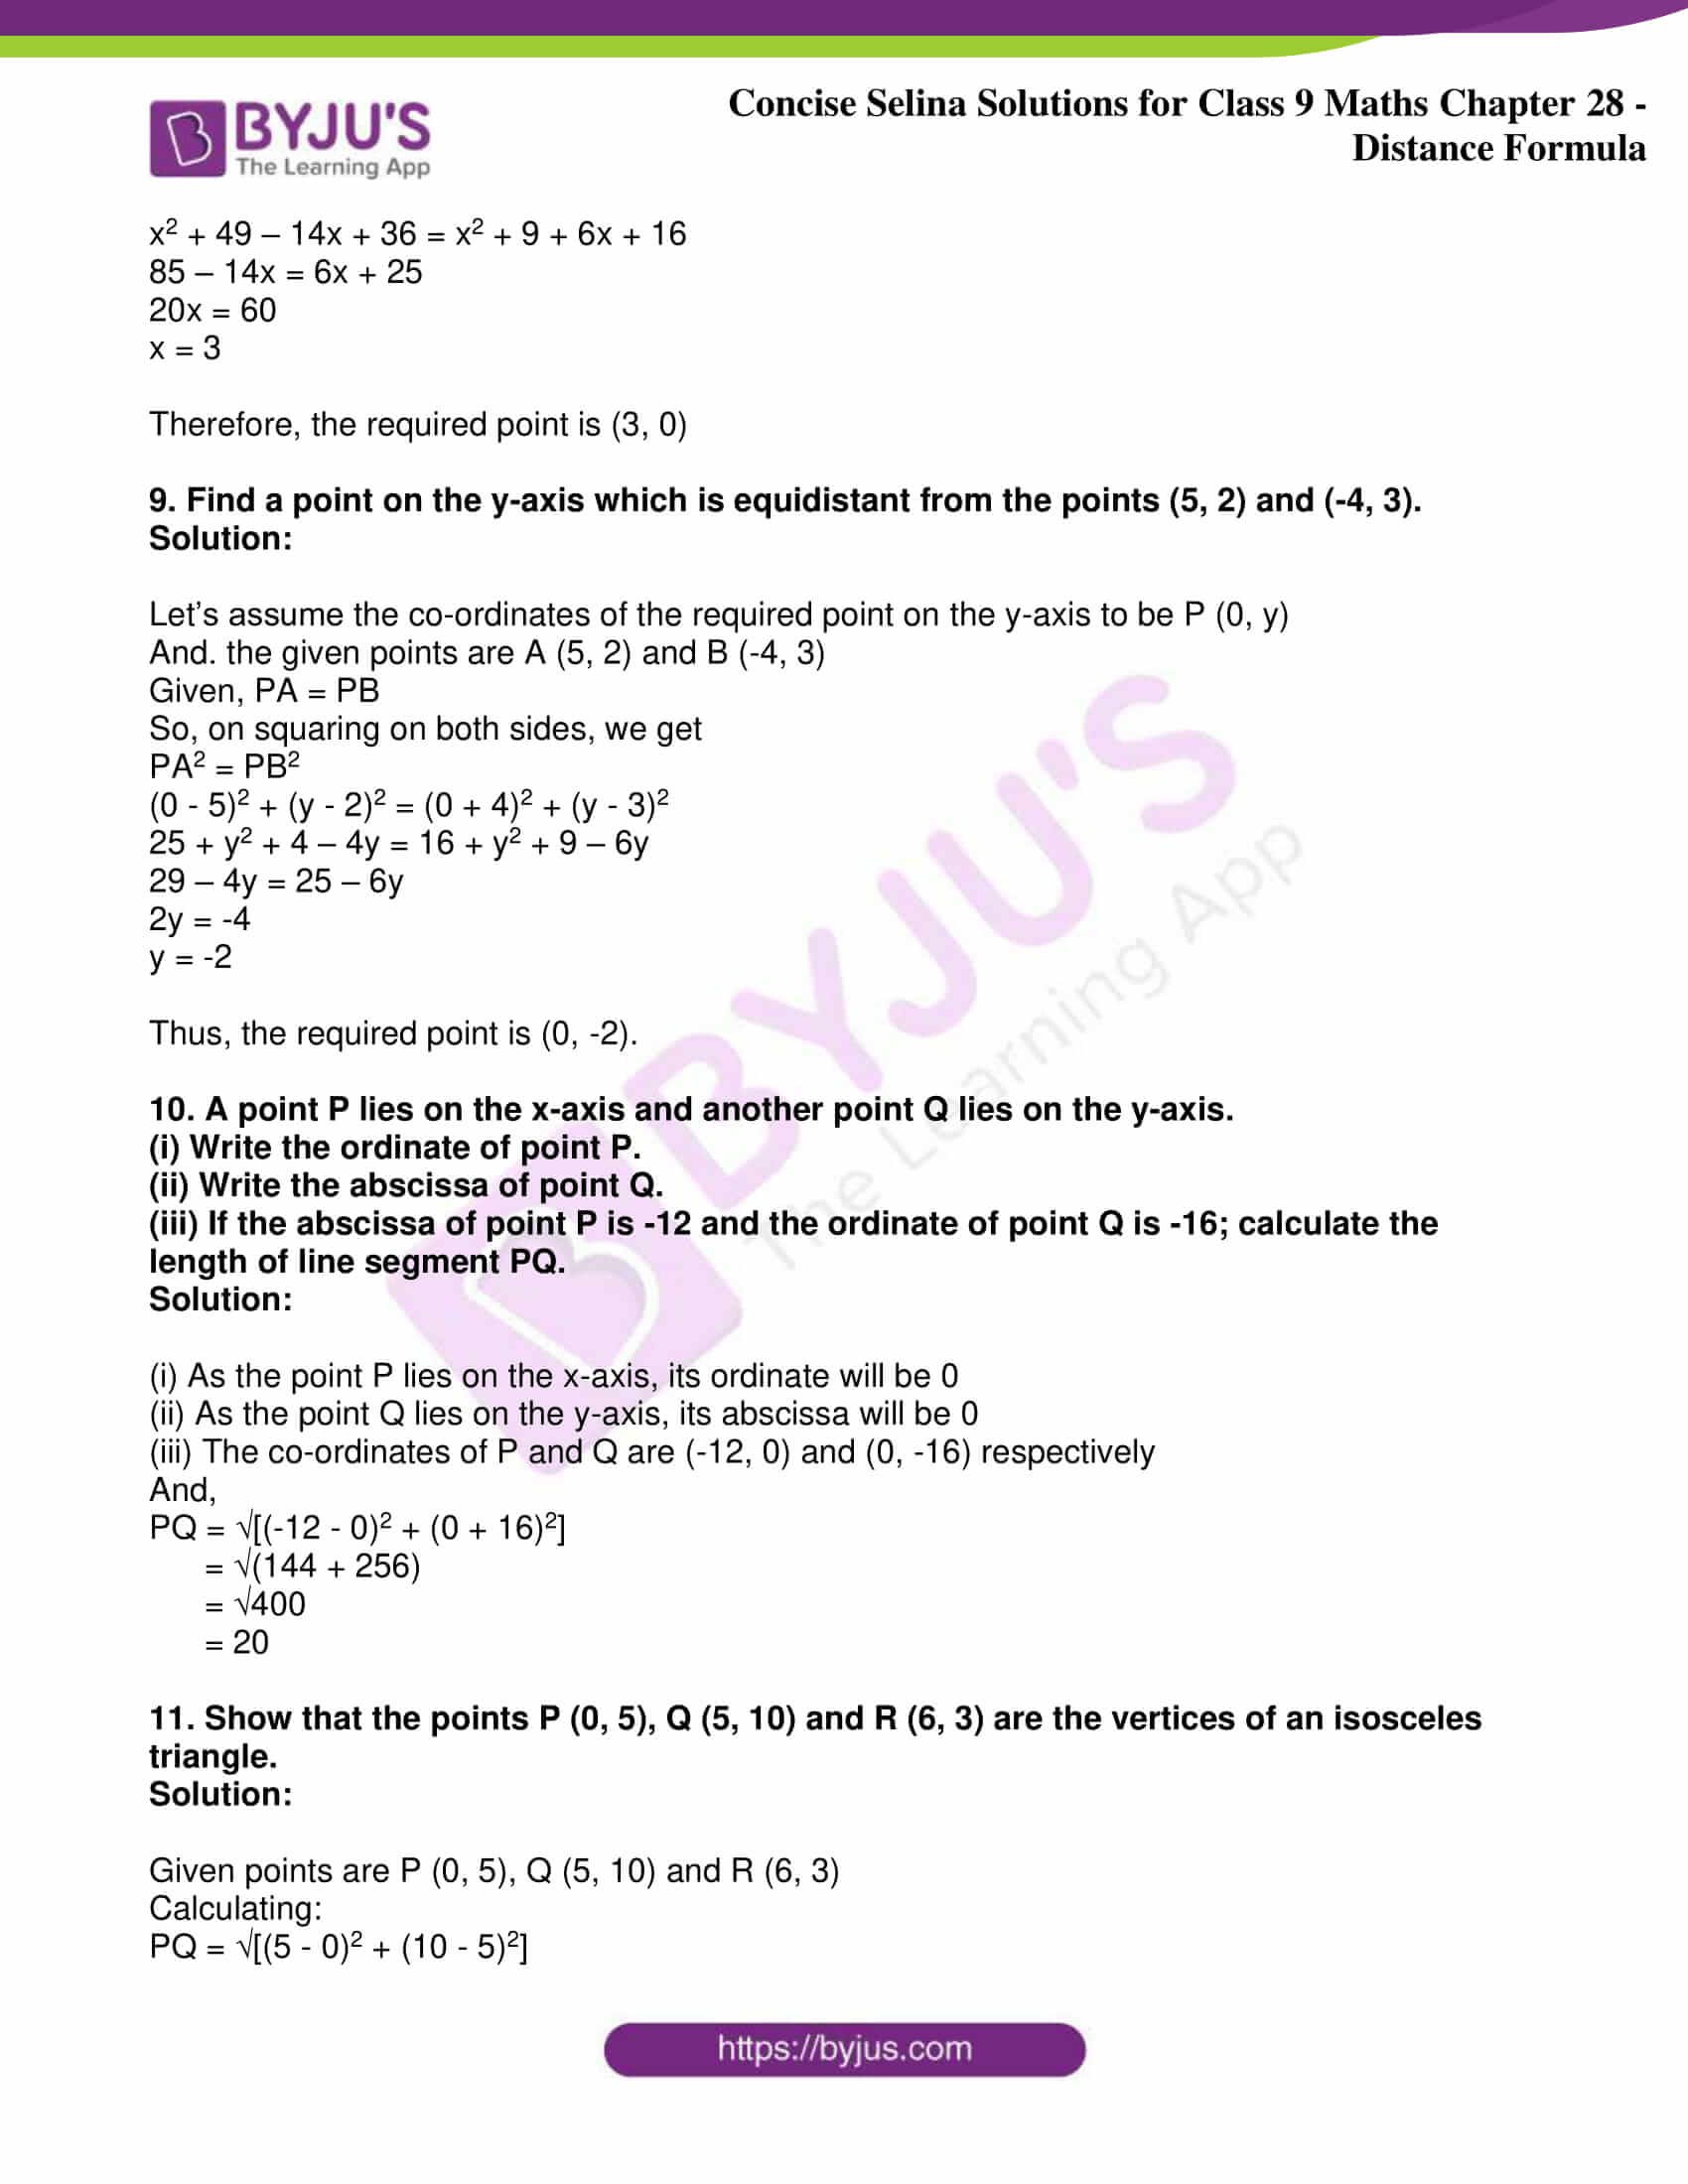 icse class 9 maths may10 selina solutions chapter 28 distance formula 05